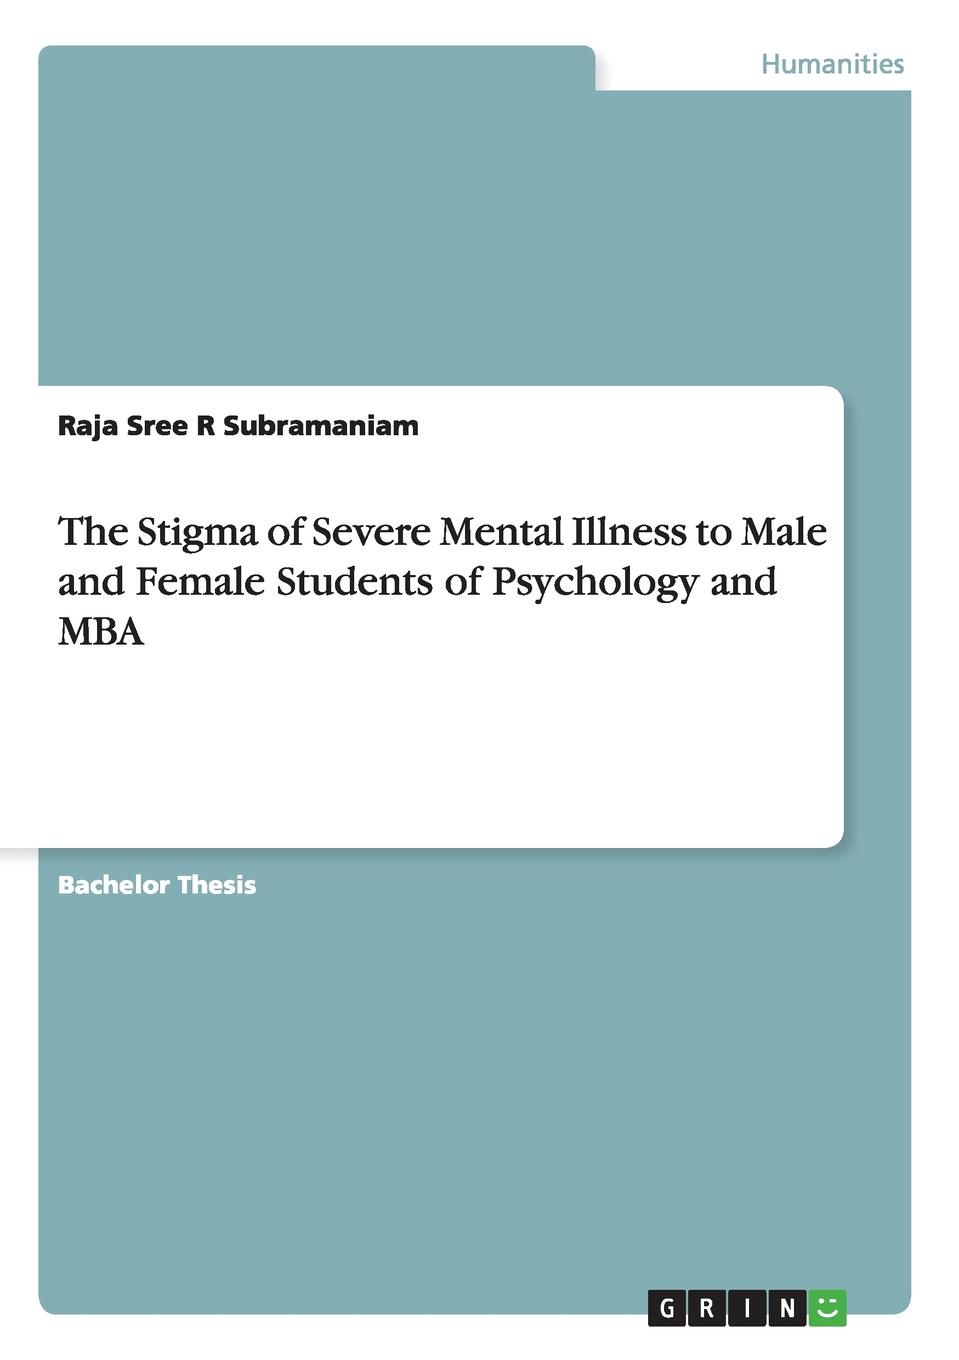 Raja Sree R Subramaniam The Stigma of Severe Mental Illness to Male and Female Students of Psychology and MBA olga b a van den akker reproductive health psychology